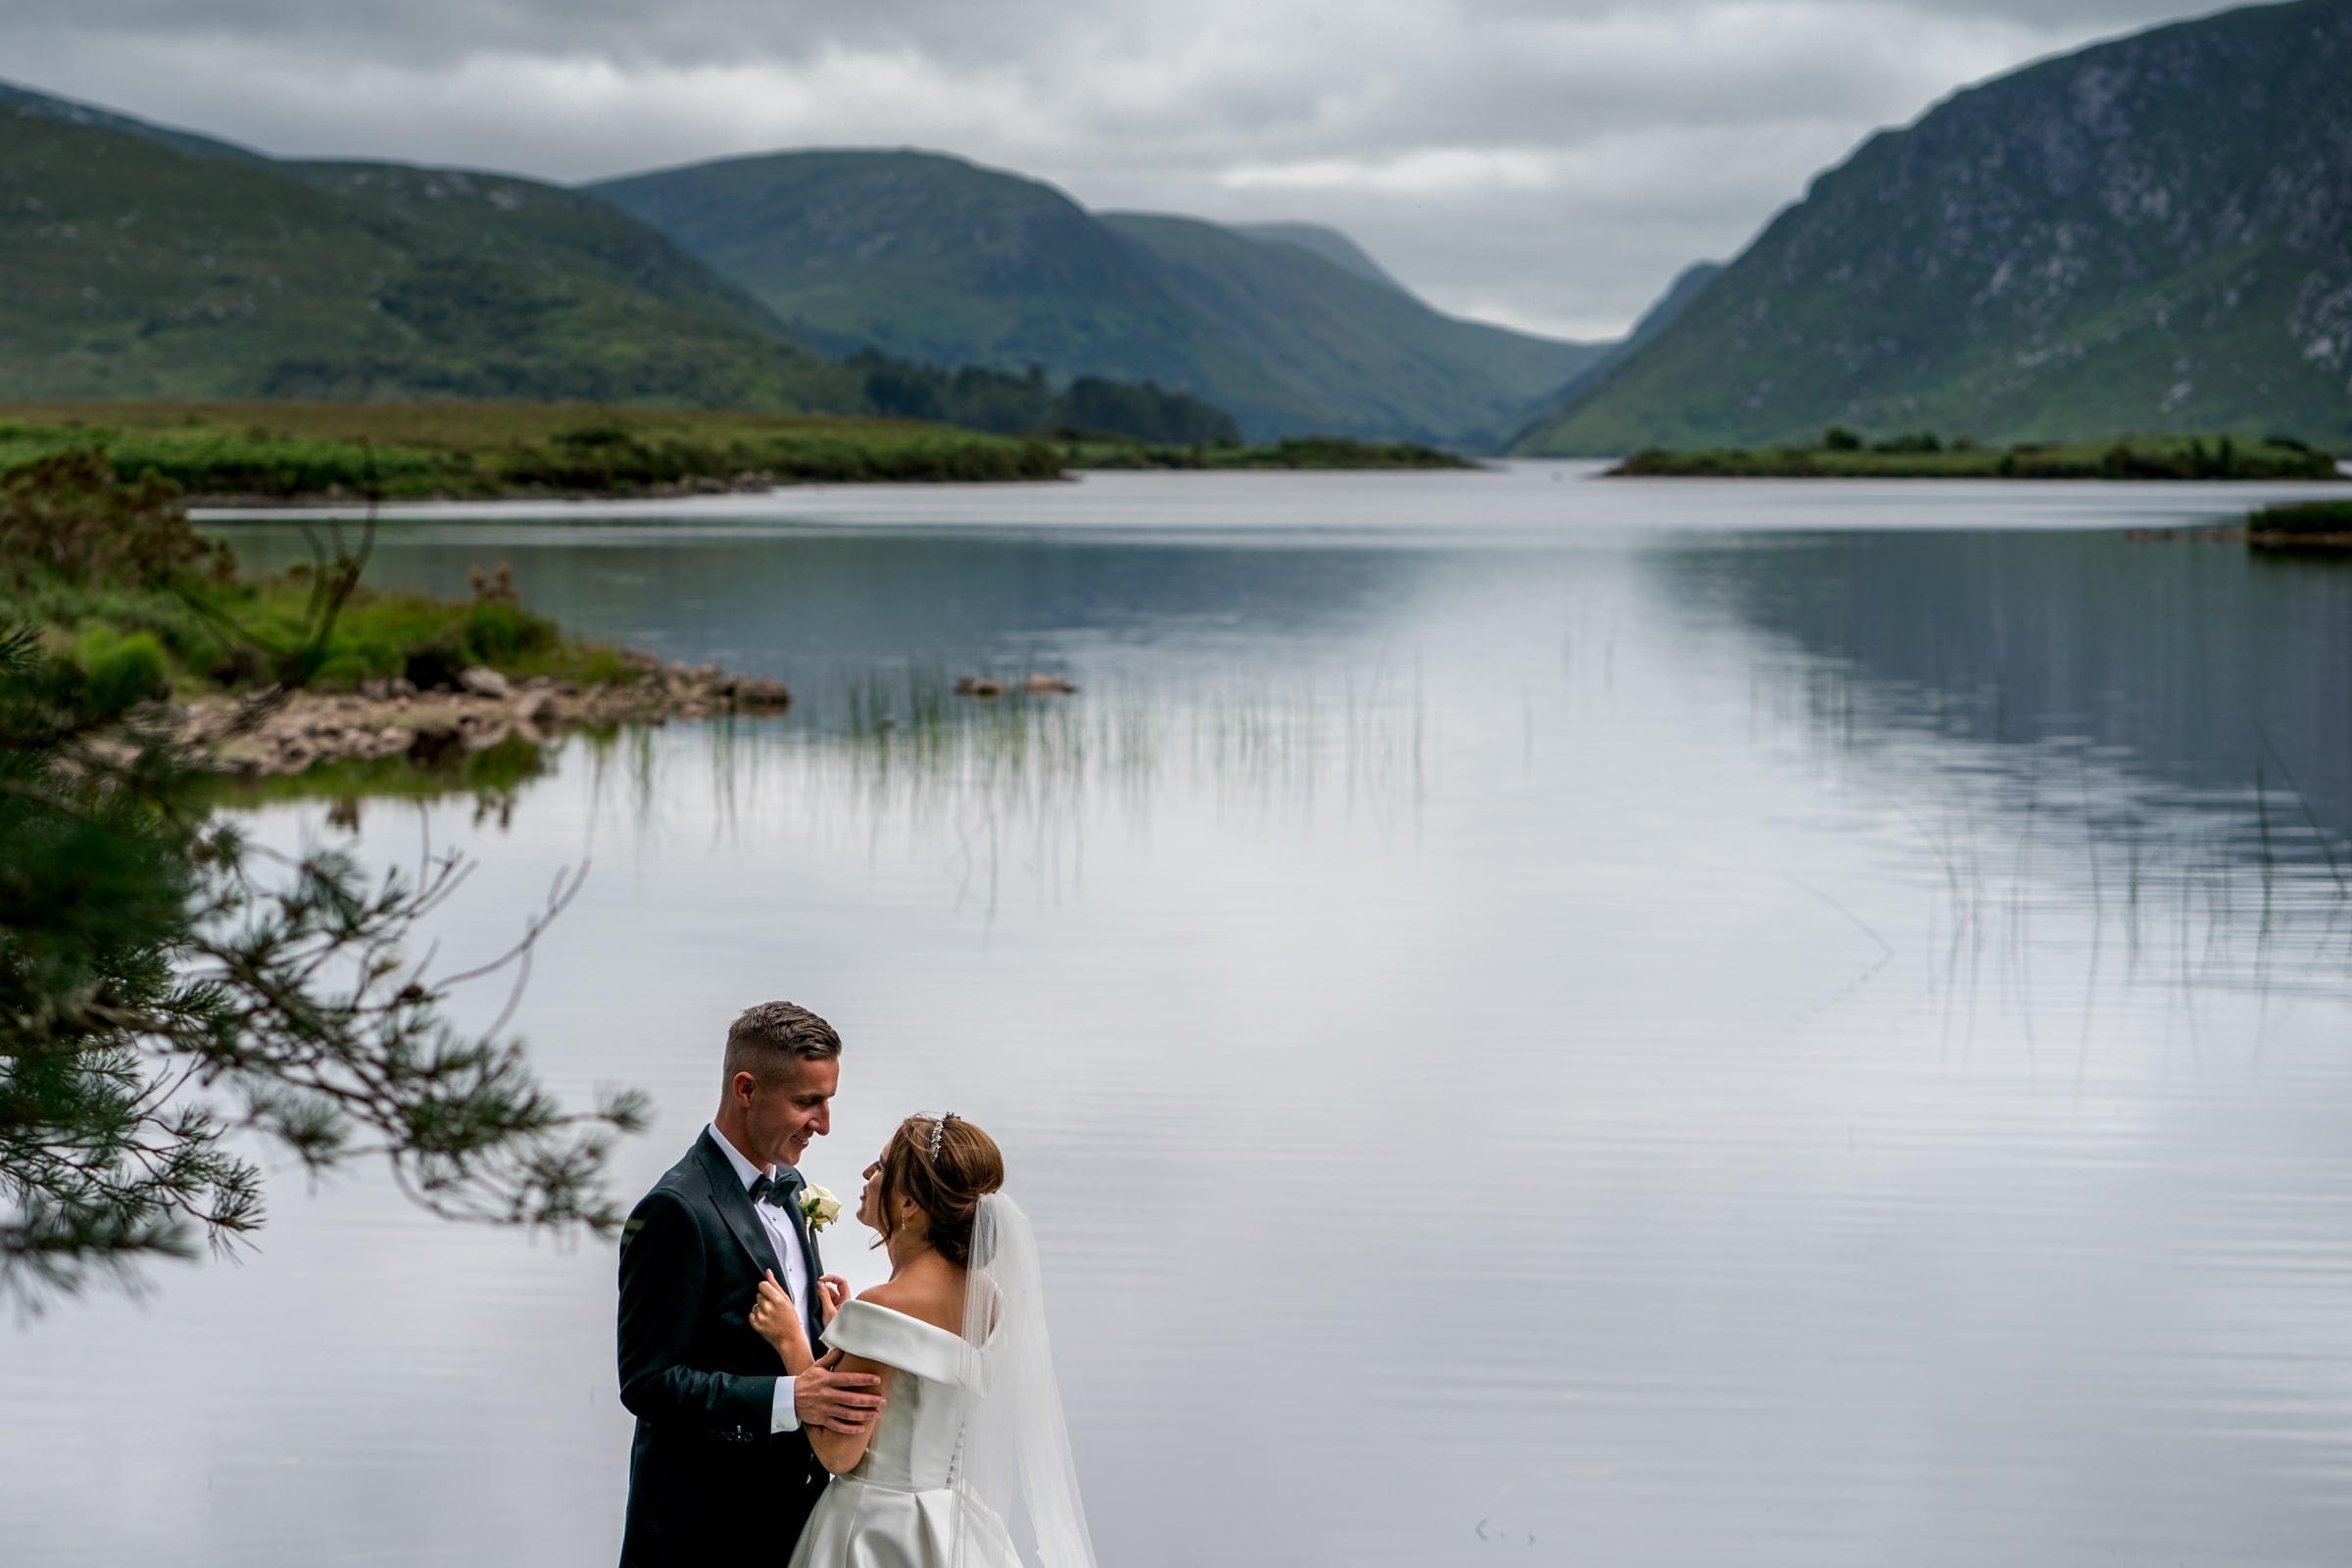 bride and groom in Glen weigh National Park, silver Tassie hotel wedding, donegal wedding venue, photographer donegal, bride and groom in the Poisoned Glen with Mount Errigal in the background, photo by Paul McGinty from Ghorm Studio photography Lough Eske.